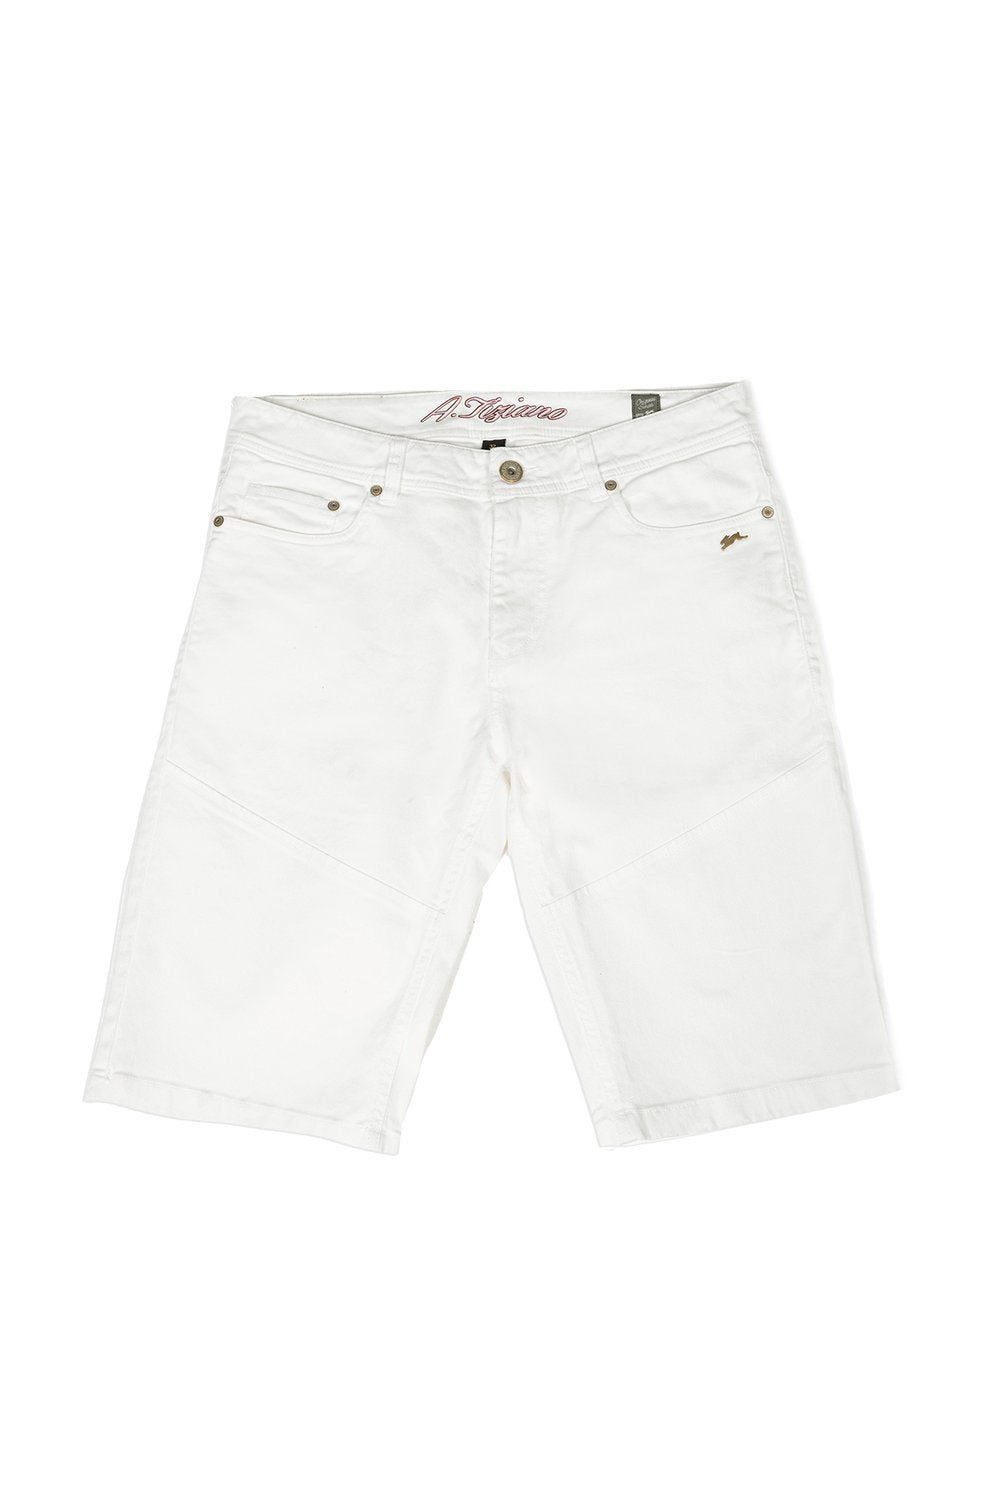 A.Tiziano Greg Twill Shorts With Sanding -White